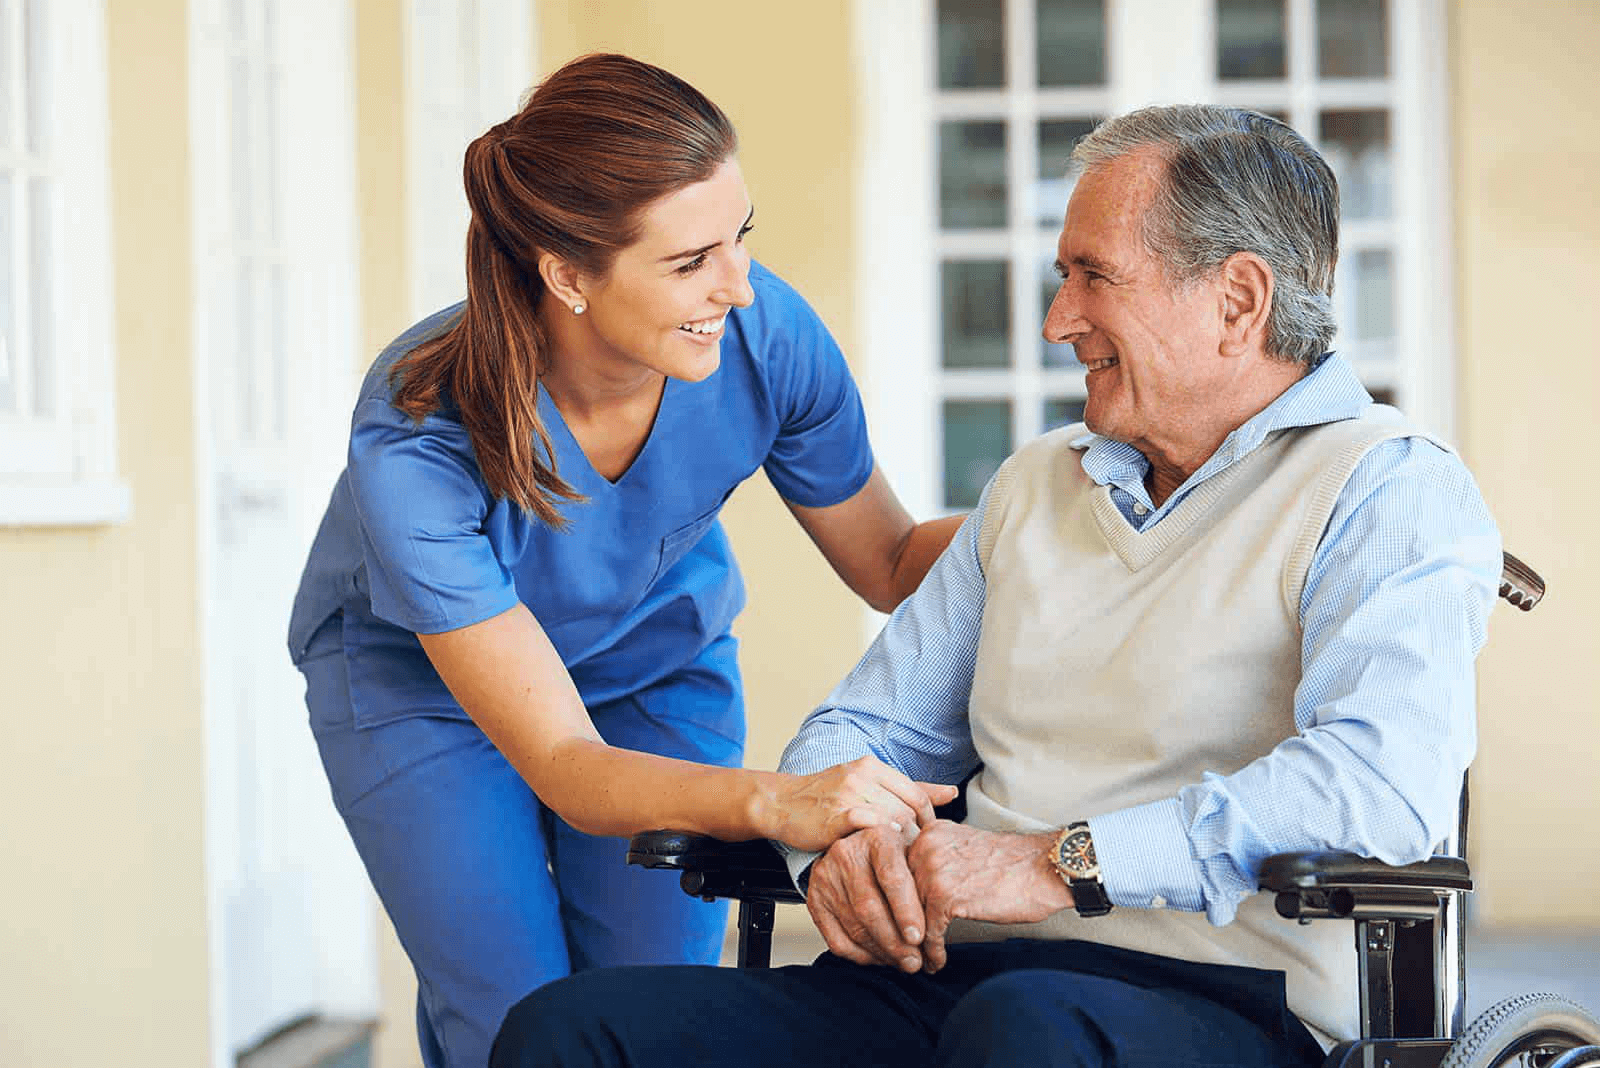 Workplace Health and Safety (WHS) in Aged Care